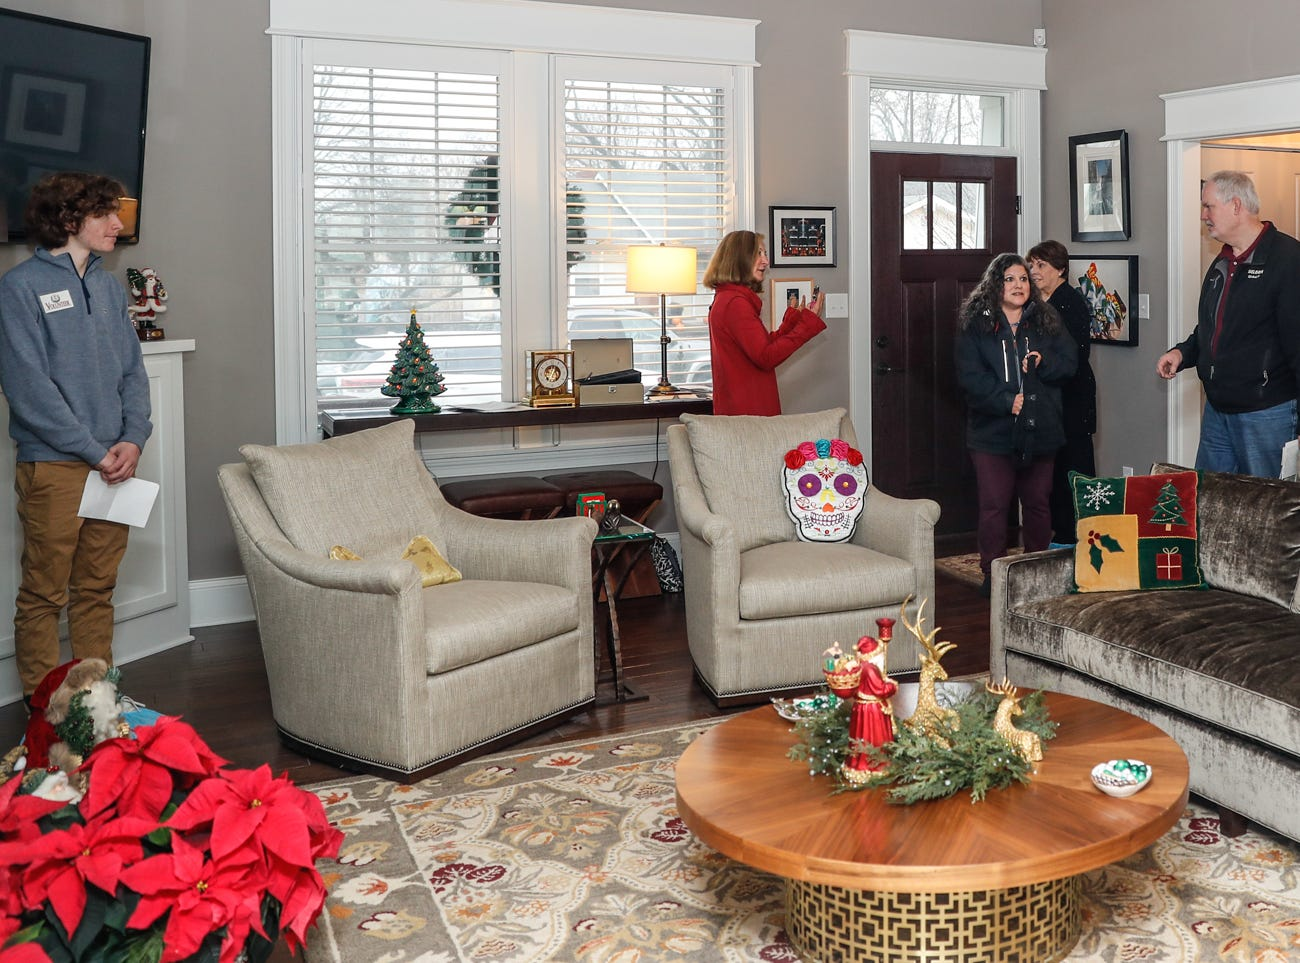 Guests tour the home of Brad Sexauer during the Carmel Clay Historical Society Holiday Home Tour in Carmel Ind. on Saturday, Dec.1, 2018. The home features an array of fine art, and an open concept floor plan.